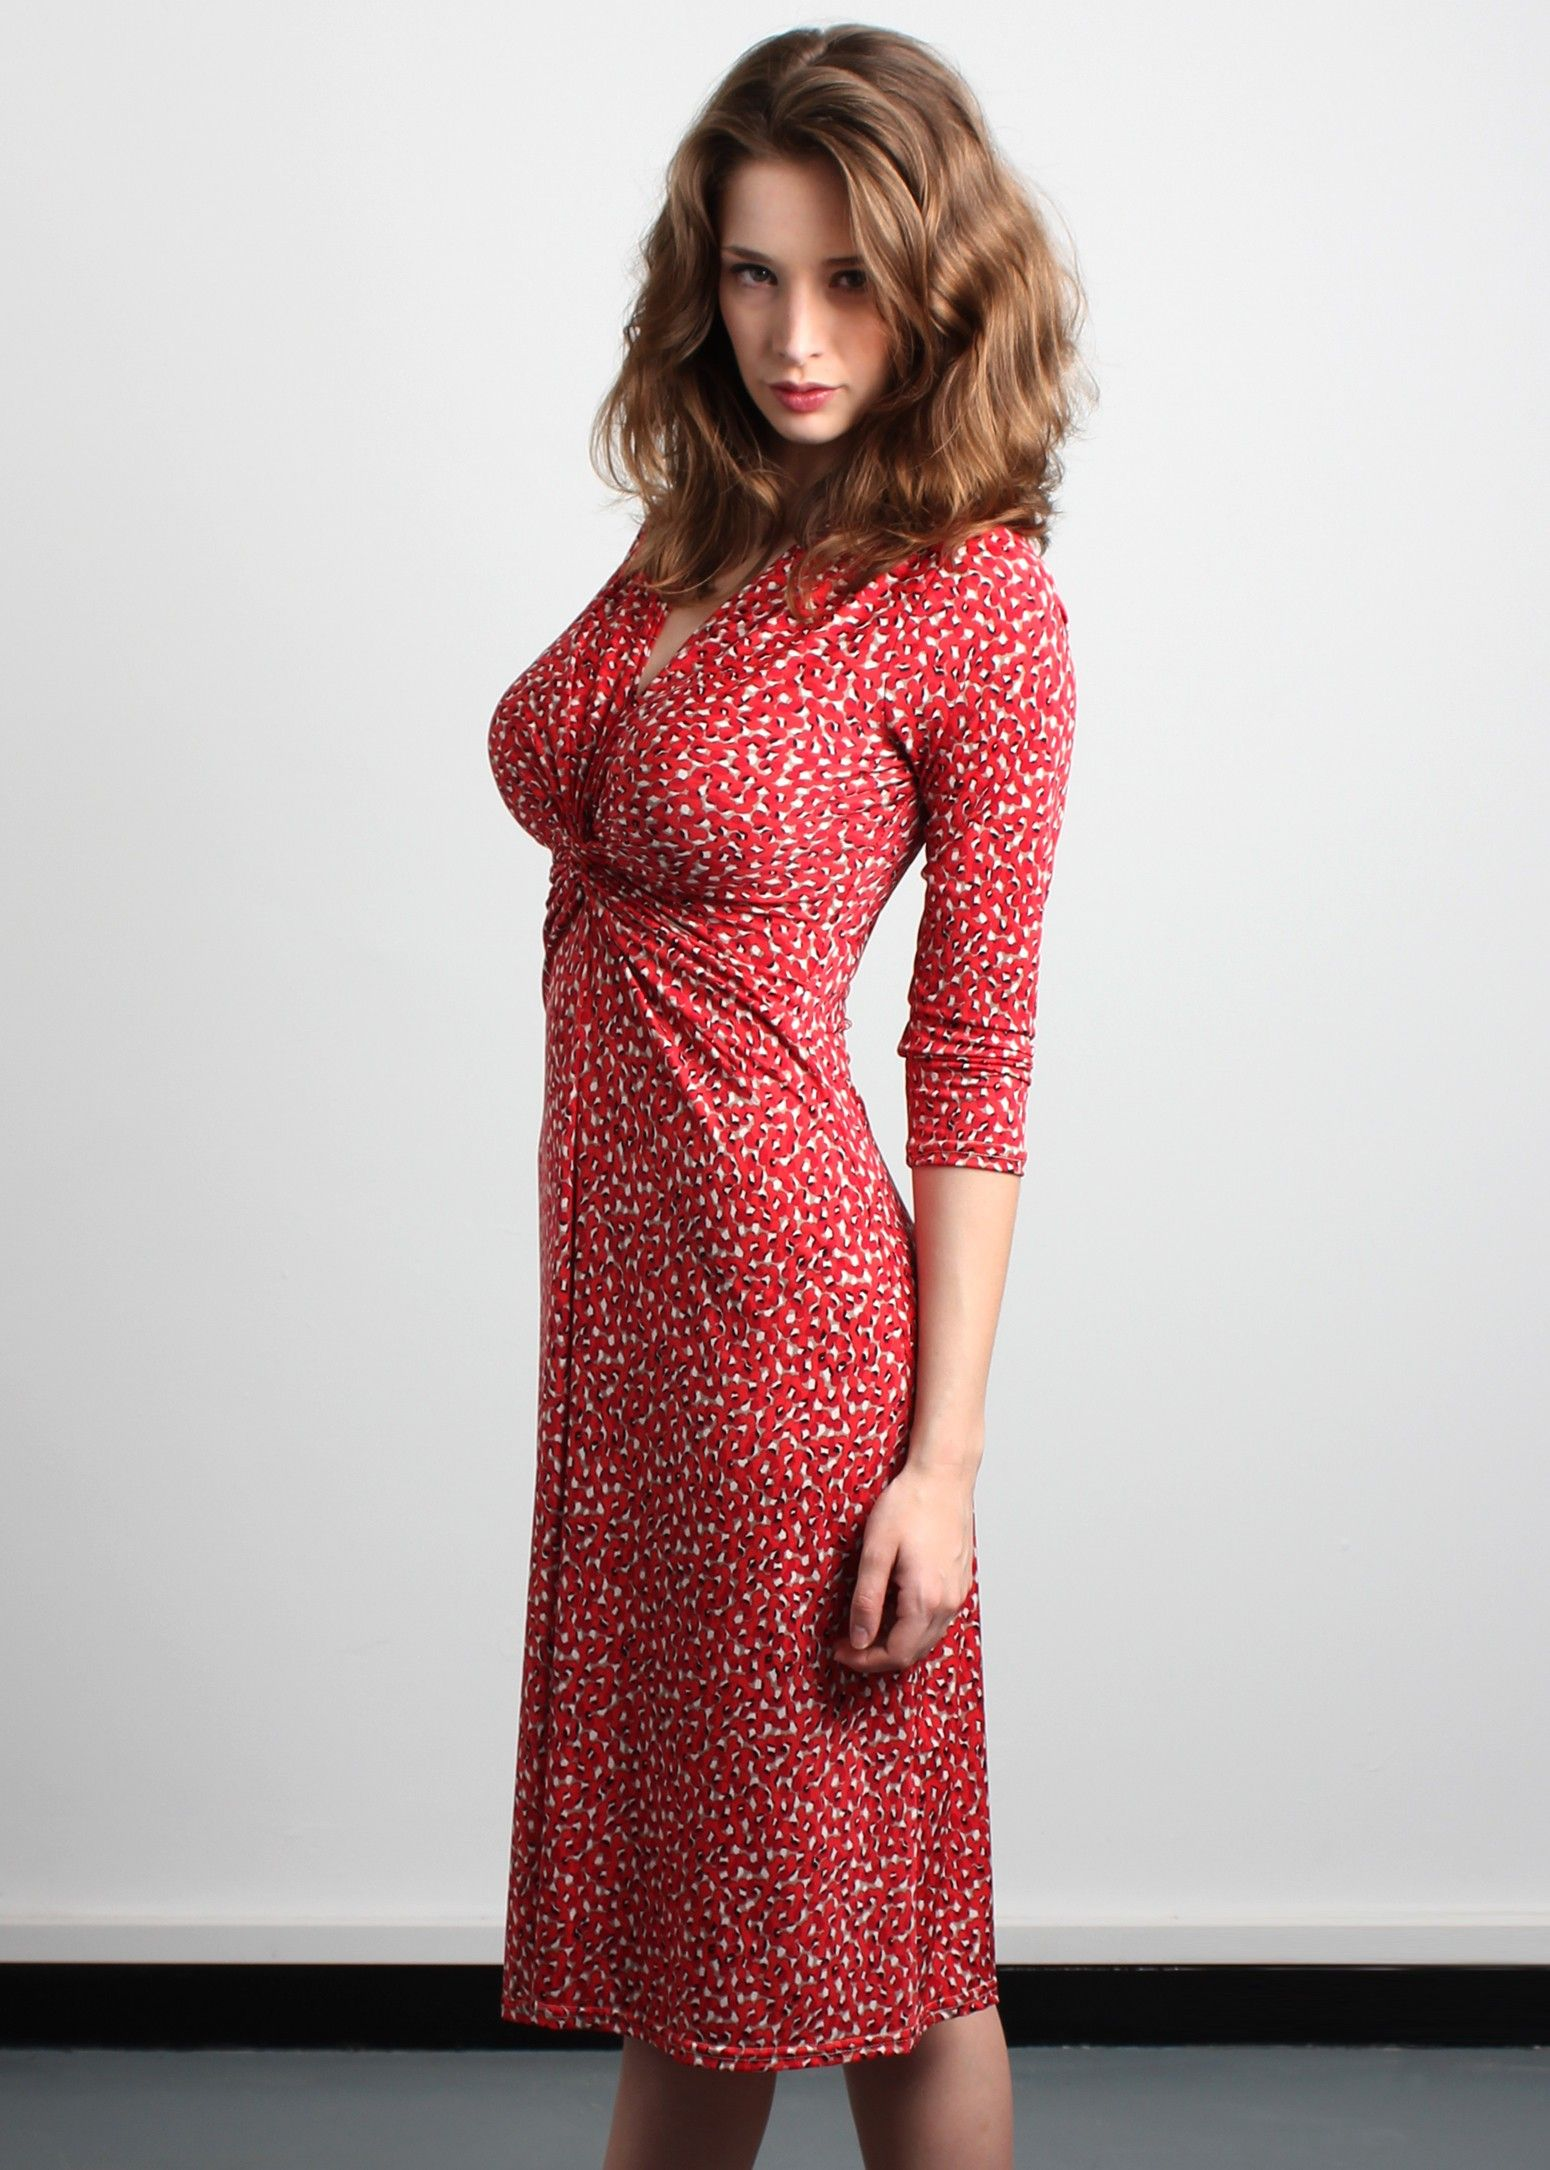 the berry dress which fits and flatters with big